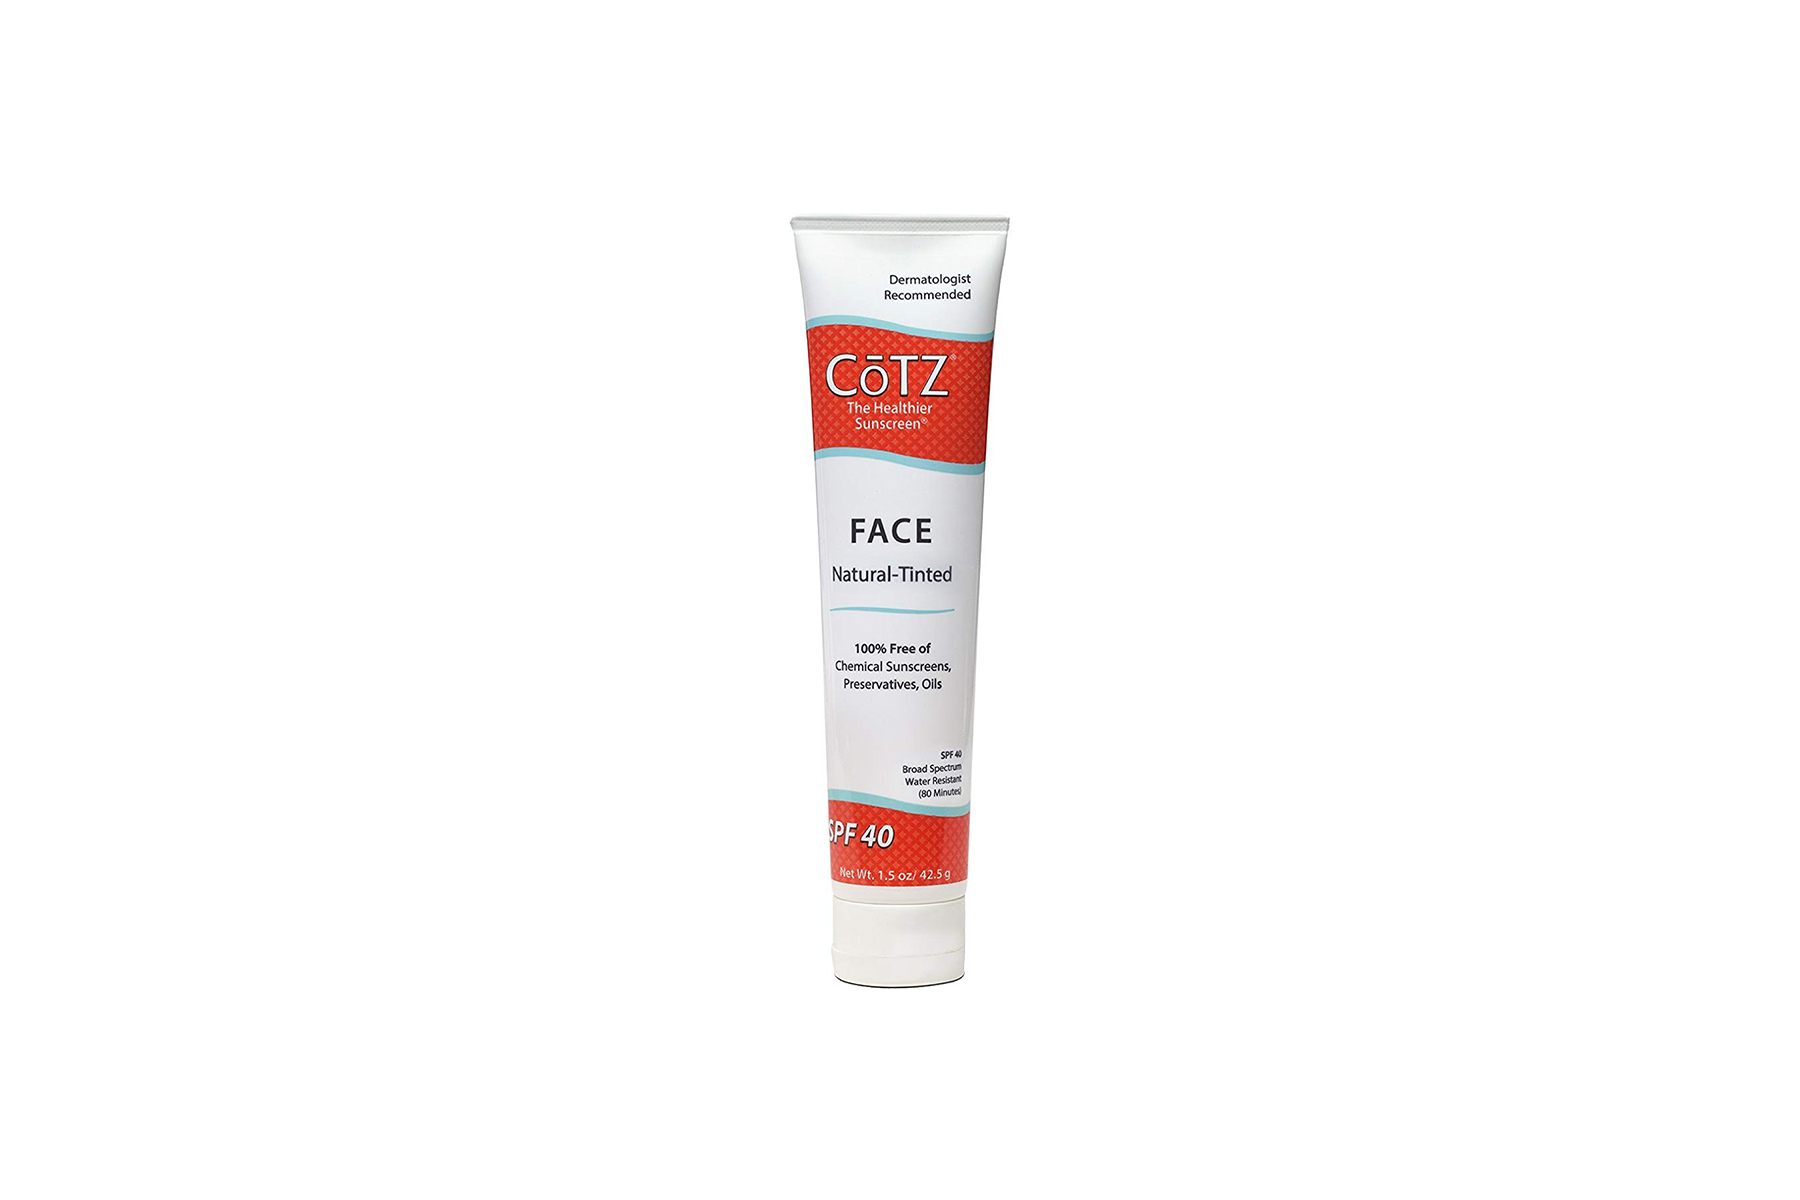 CoTZ Face Natural Skin Tone Sunscreen